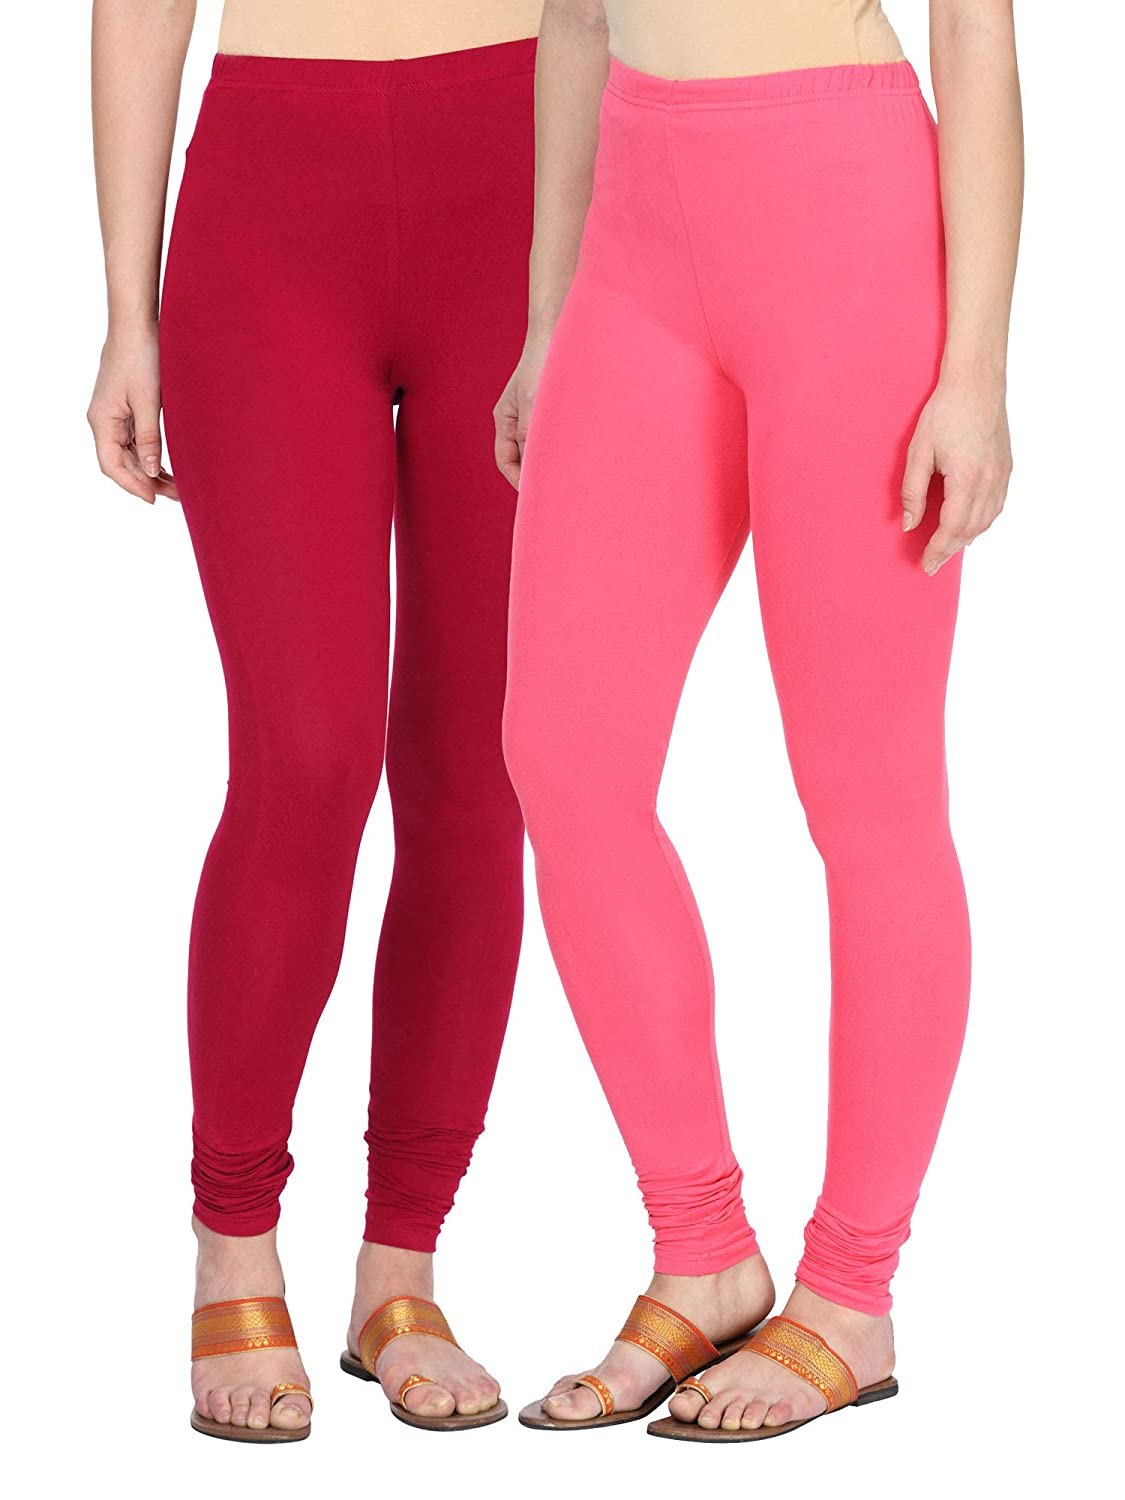 d92da2c144 Alena Cotton Lycra Womens Churidar Length Red/Baby Pink Color Leggings:  Amazon.in: Clothing & Accessories